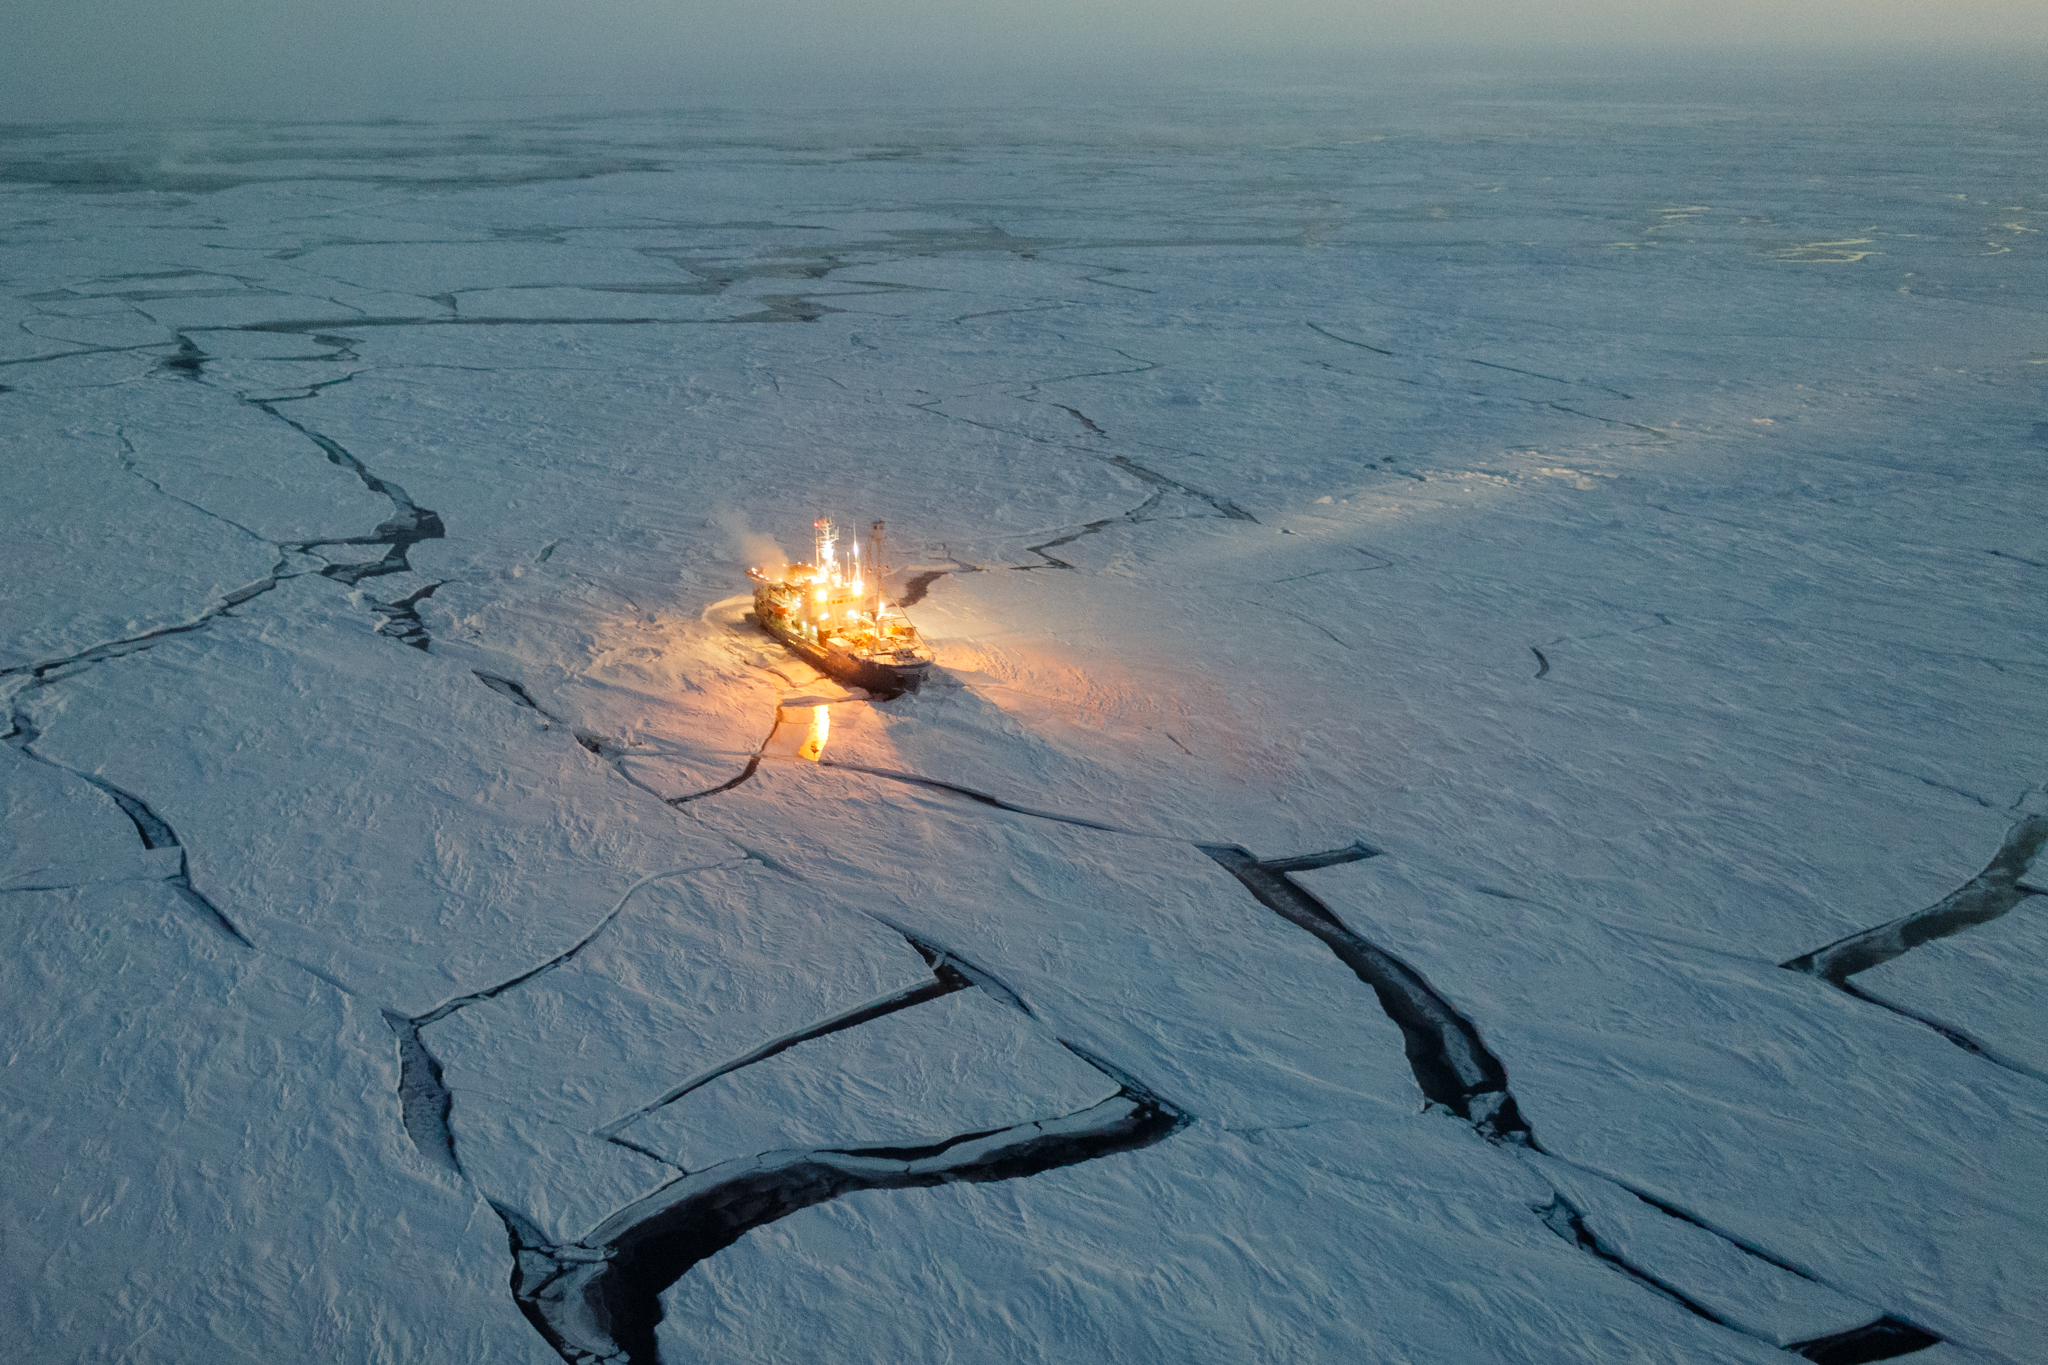 The Norwegian Young Sea Ice Cruise spent six months aboard the R/V Lance in 2015 to study the effects of global warming on the Arctic. Photograph by Nick Cobbing, National Geographic